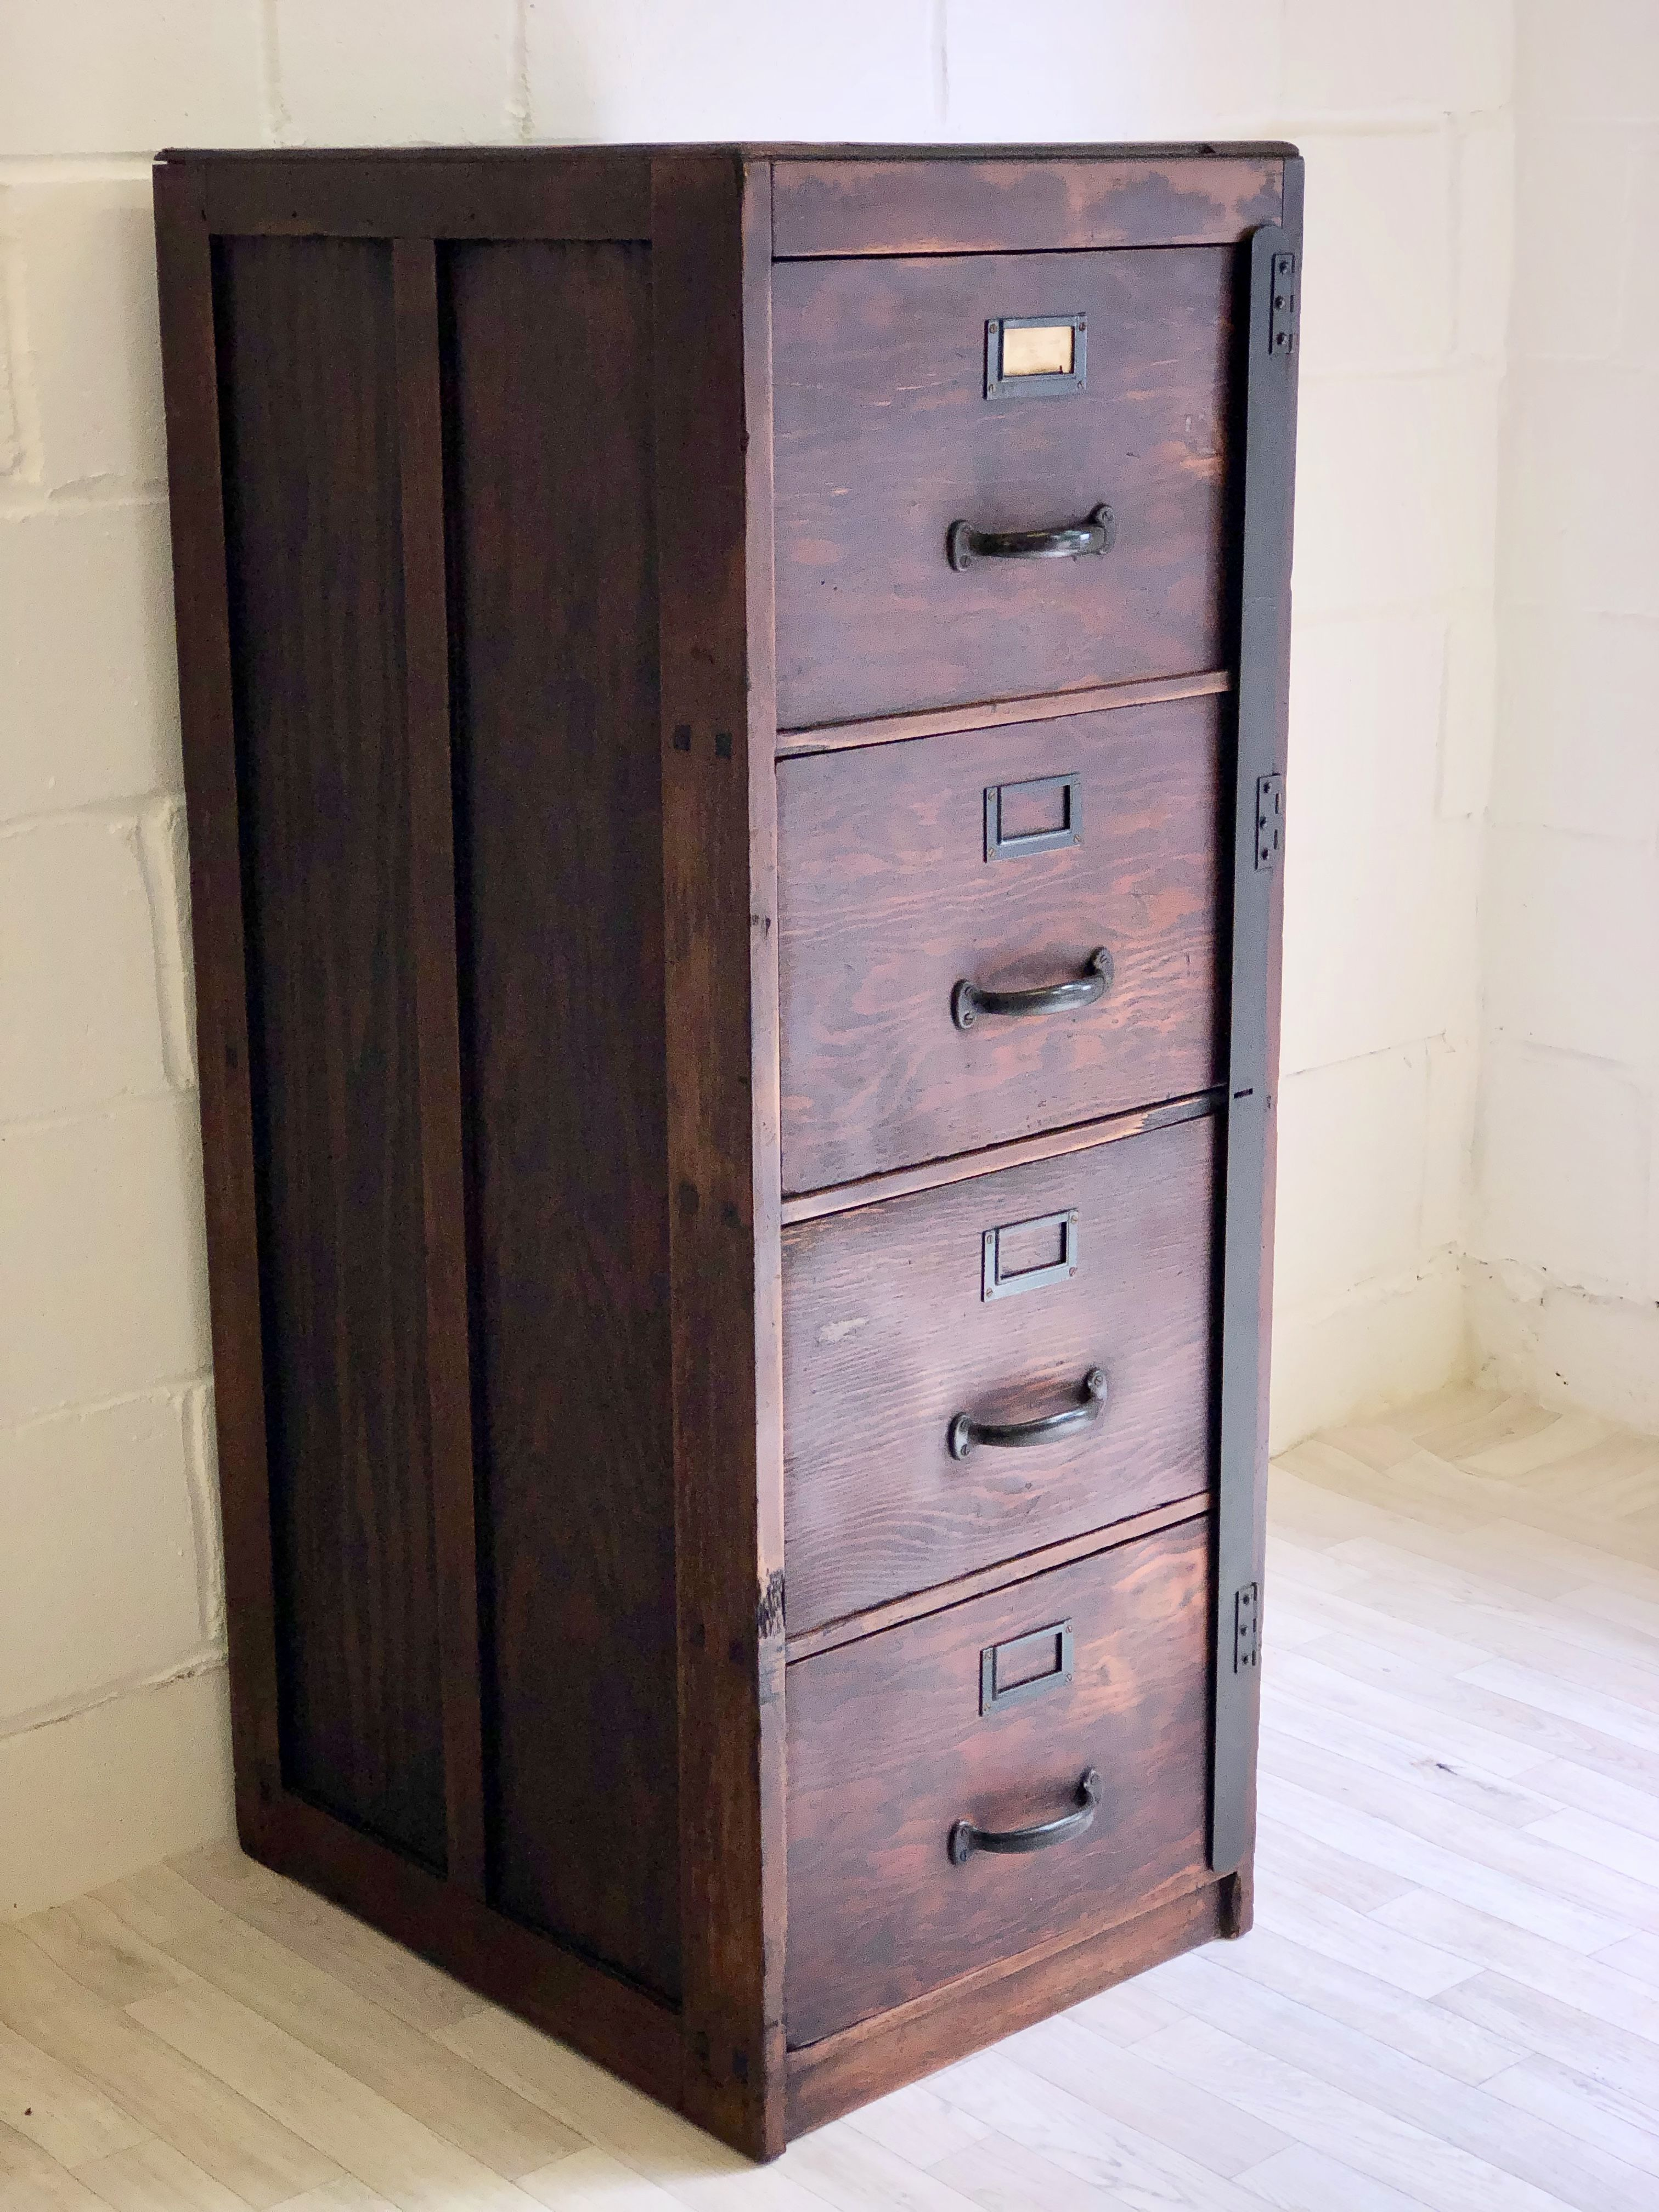 1940s Vintage Filing Cabinet 4 Drawers With Metal Vinterior Sent To Crewe Gb Vintage Filing Cabinet Filing Cabinet Metal Storage Cabinets 4 drawer locking file cabinets